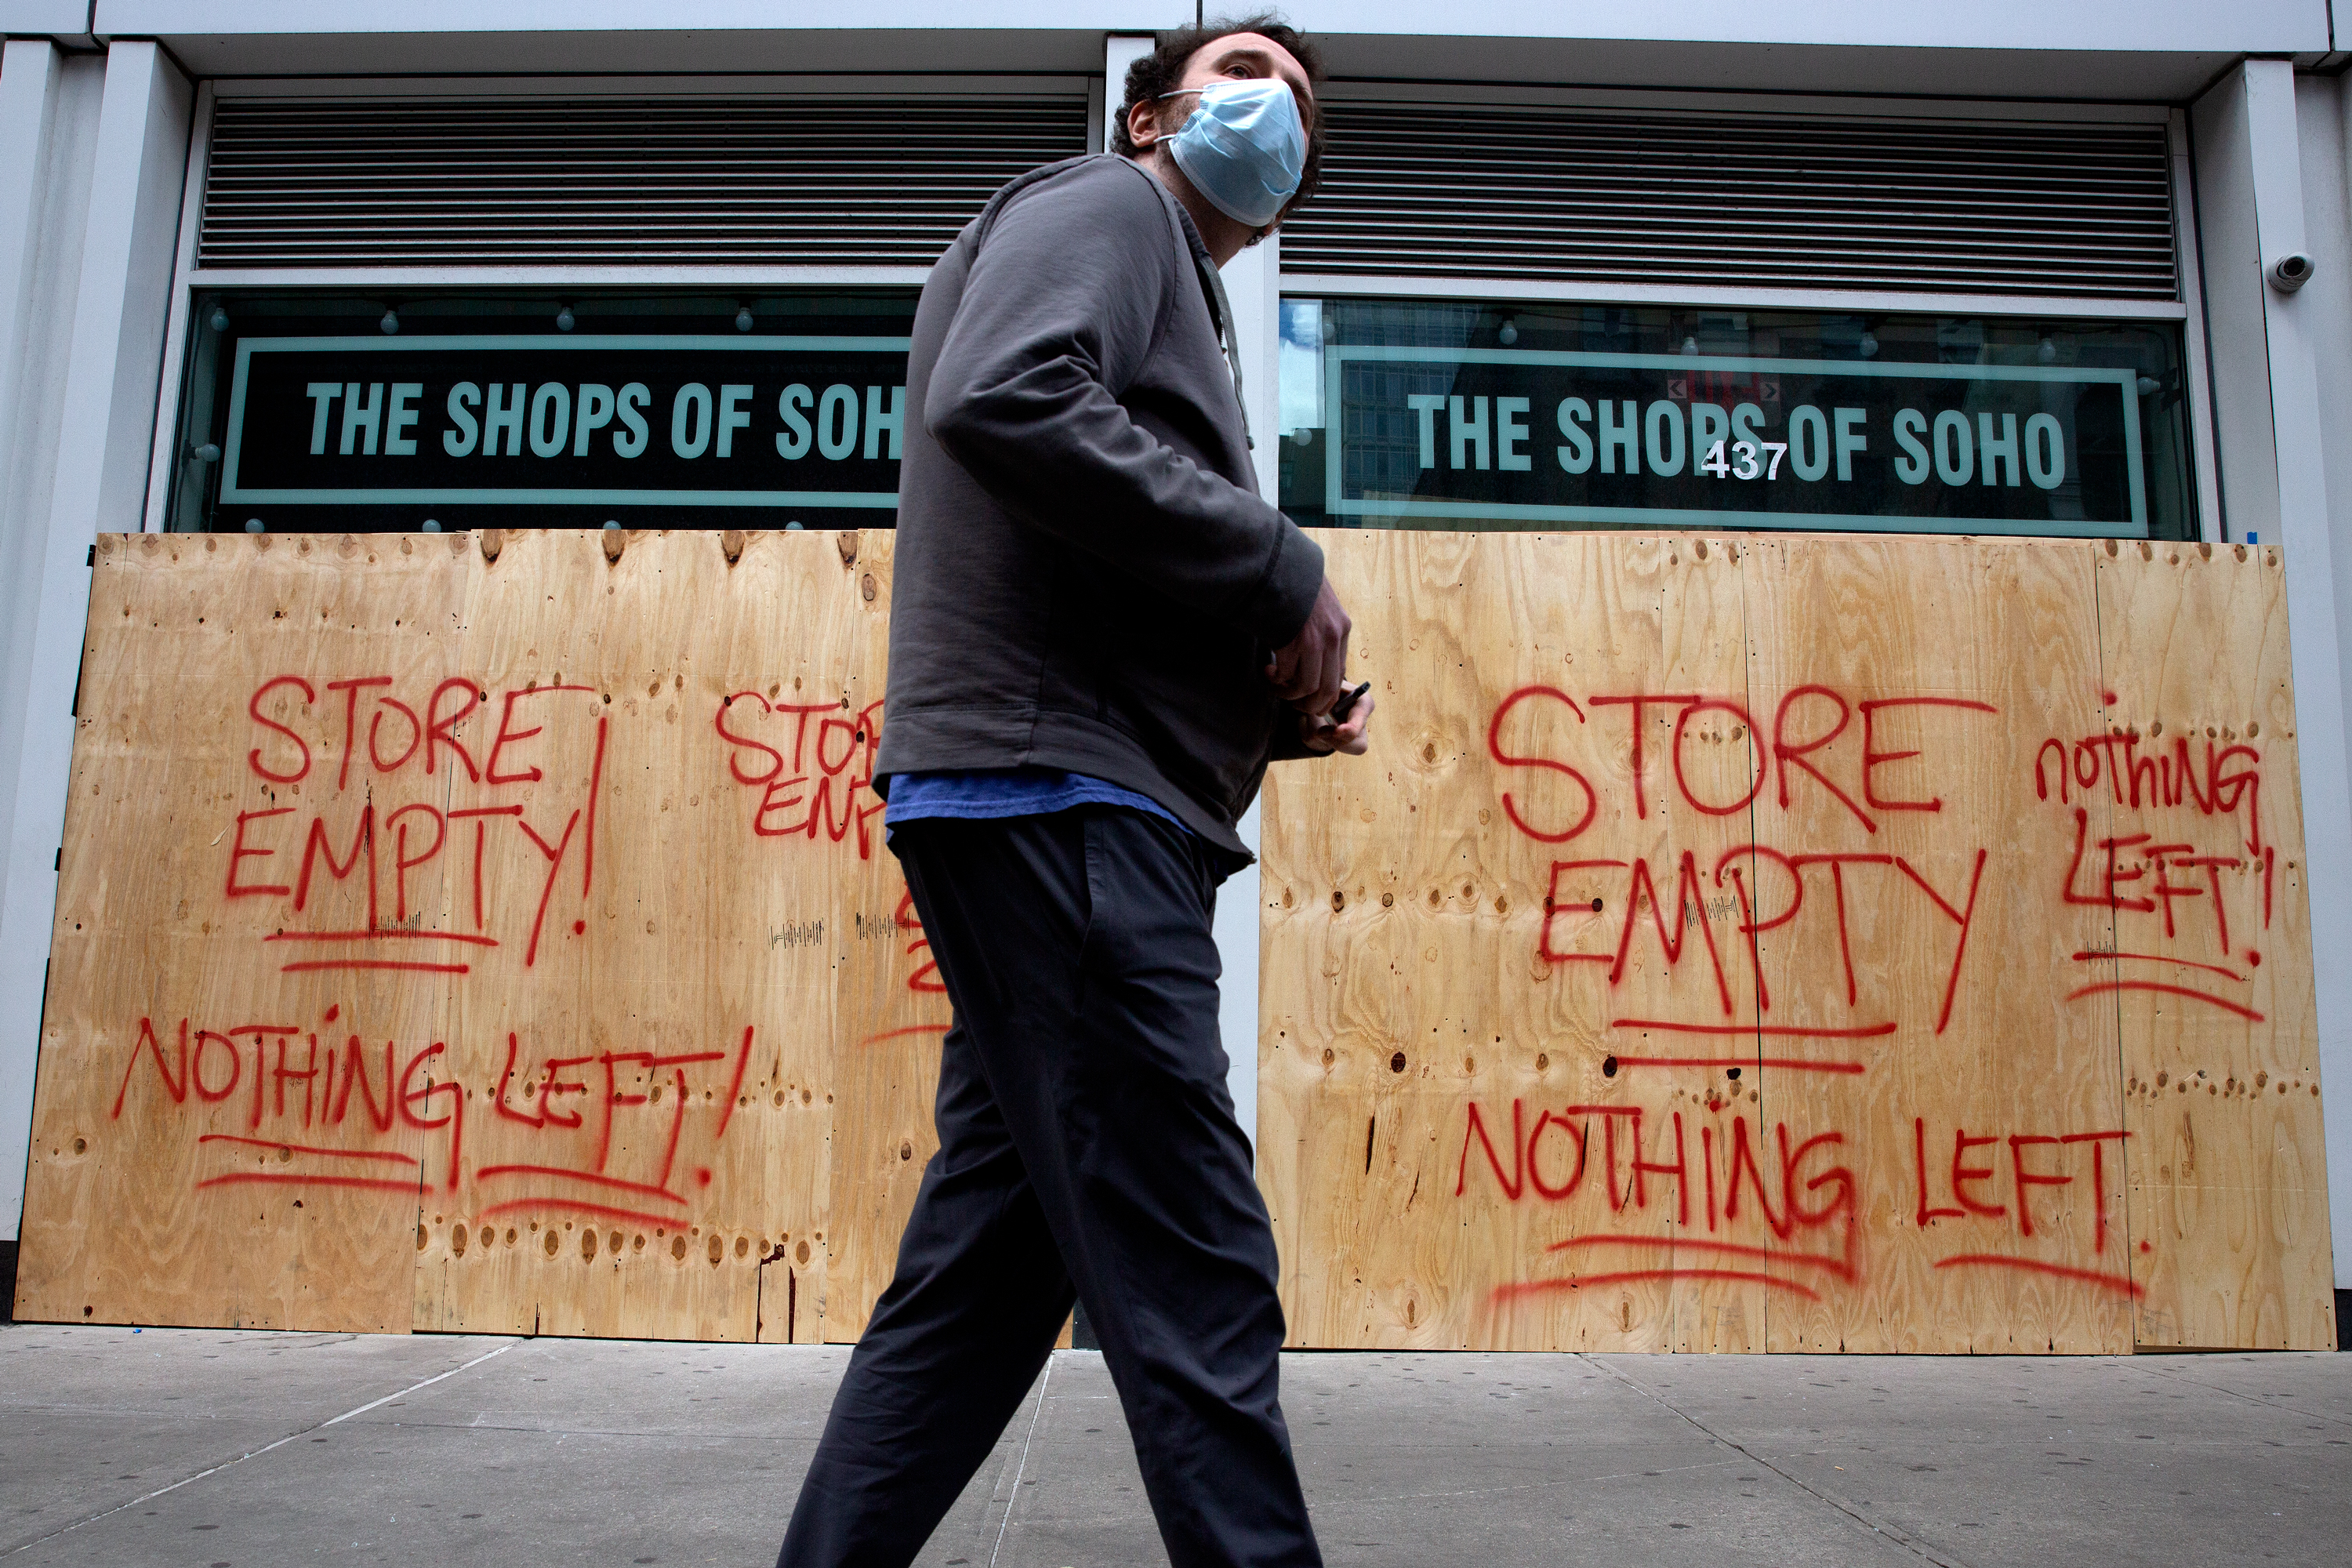 A worker at SoHo's Snkrflea said people looted the store for shoes during protests on Saturday.